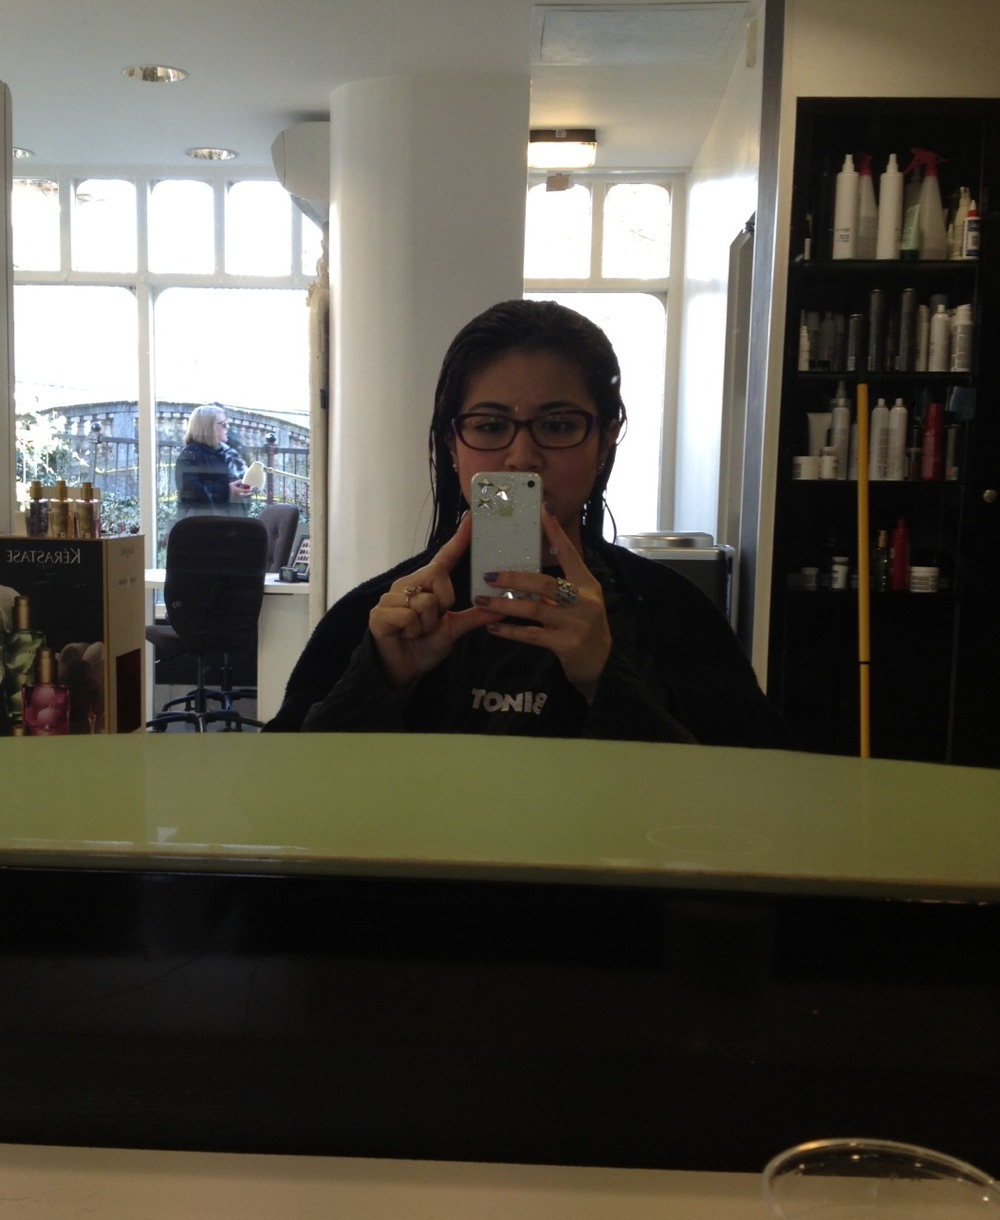 Hair Cut at Toni & Guy